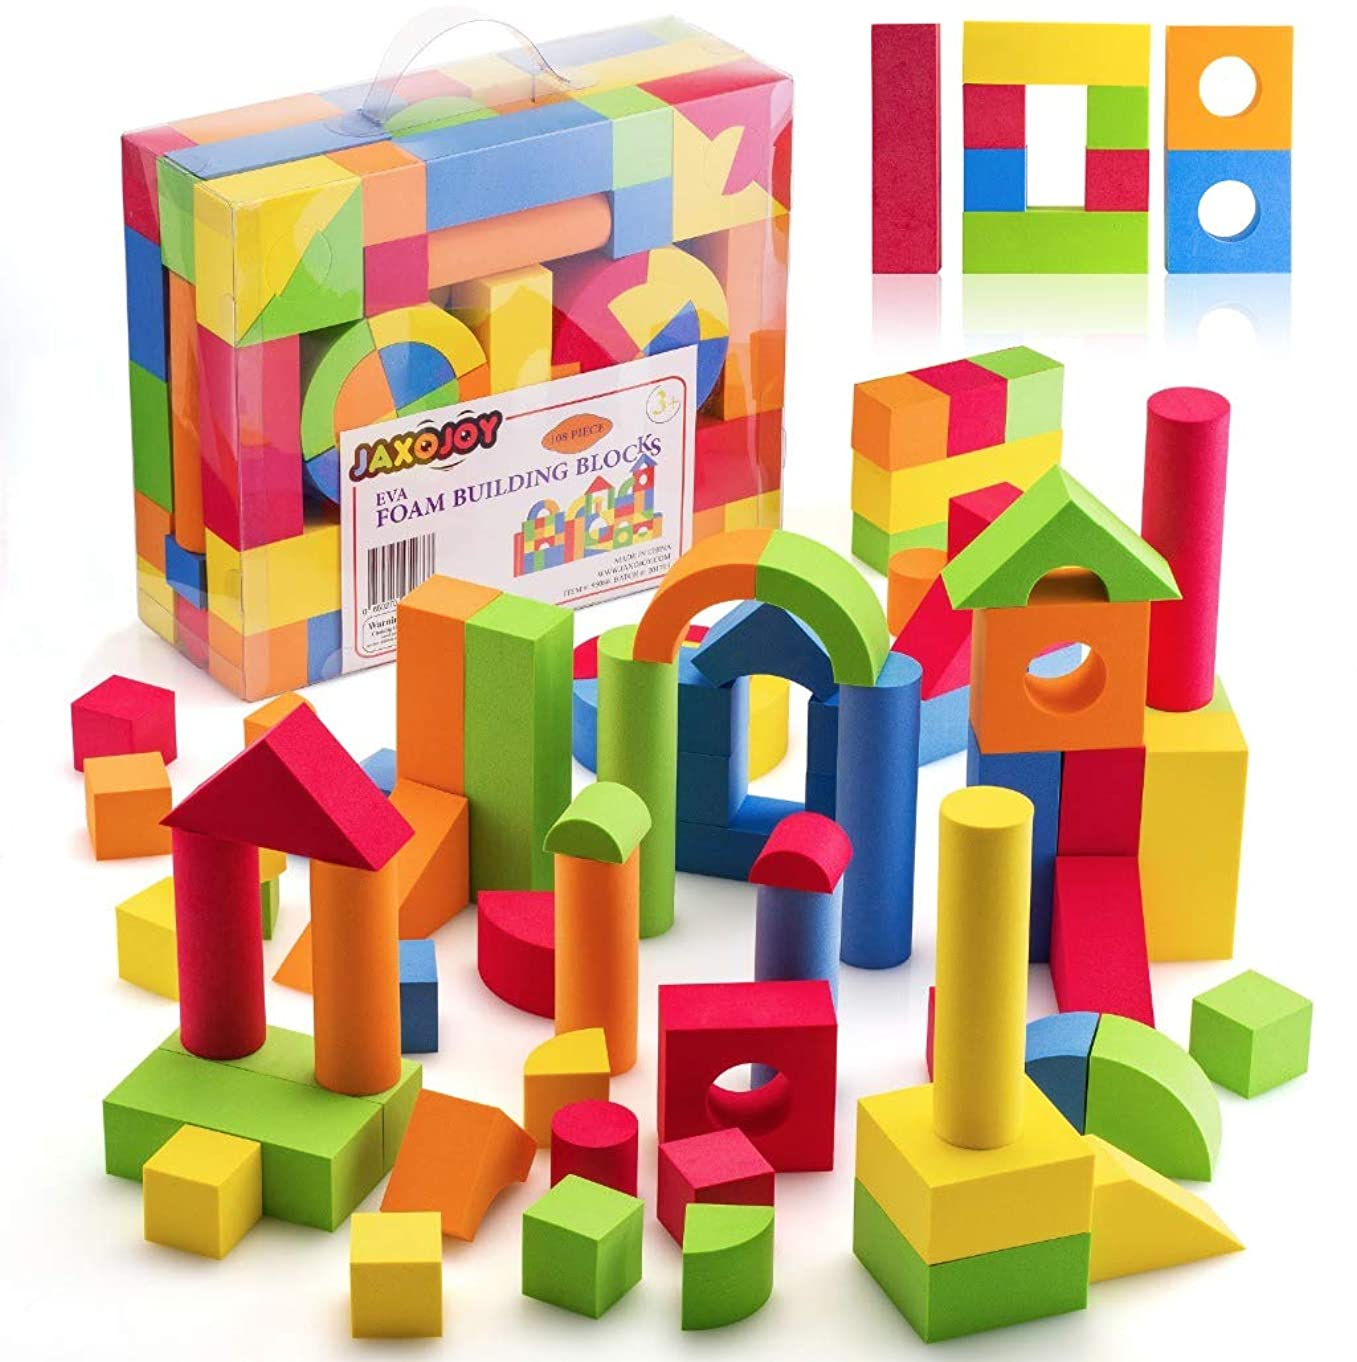 JaxoJoy Foam Building Blocks for Kids– 108 Piece EVA Foam Blocks Gift Playset for Toddlers Includes Large, Soft, Stackable Blocks in Variety of Colors, Shapes & Sizes – Recommended Ages 3+.